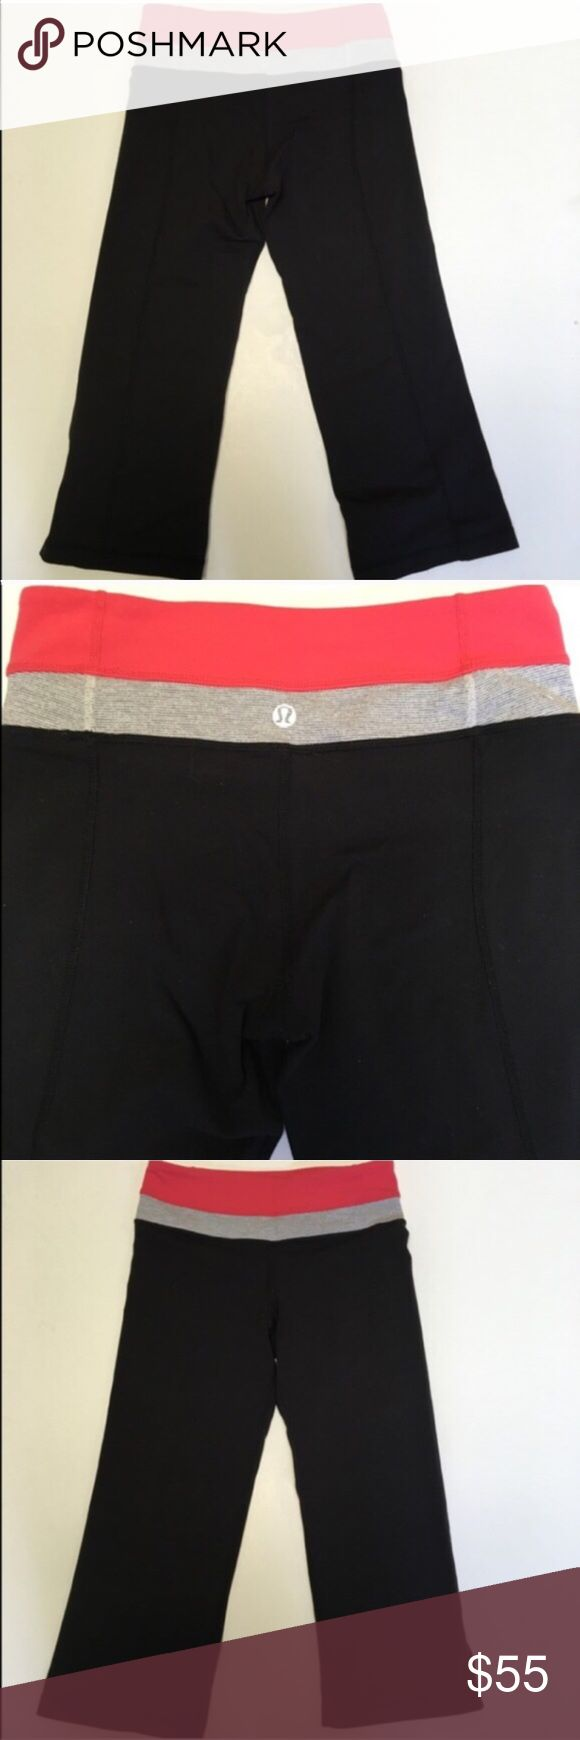 """Lululemon Black Coral Capri Crops Black with coral and grey at the top. Lululemon logo on back center waistband. Small pocket at front left. Unstretched, 24"""" at waist and about 20"""" inseam. In outstanding condition. lululemon athletica Pants Leggings"""